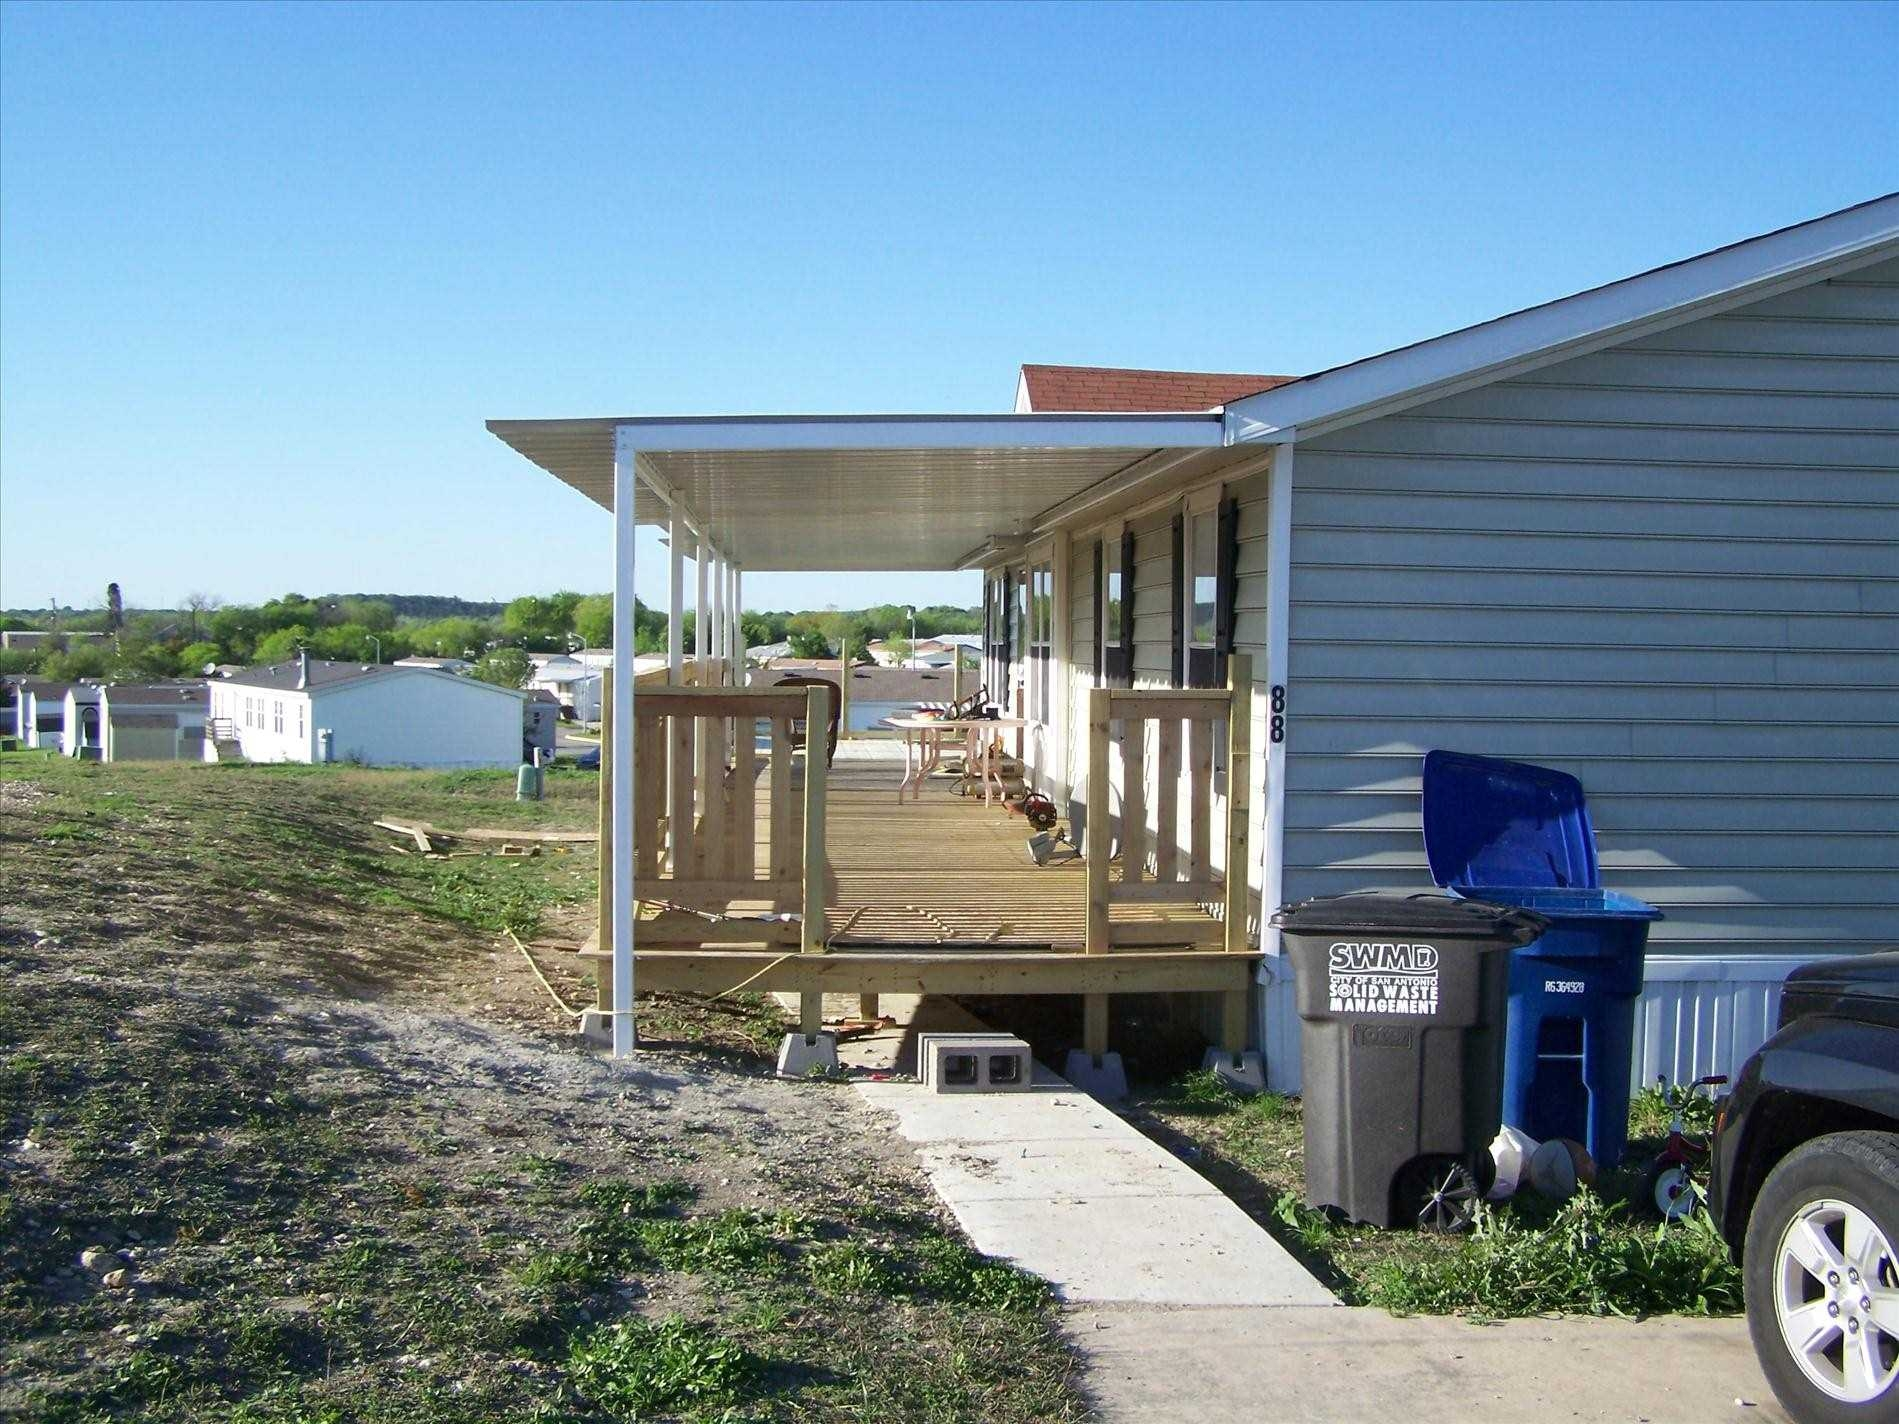 Porch Designs for Mobile Homes | Porch Ideas for Mobile Homes | Mobile Home Porches